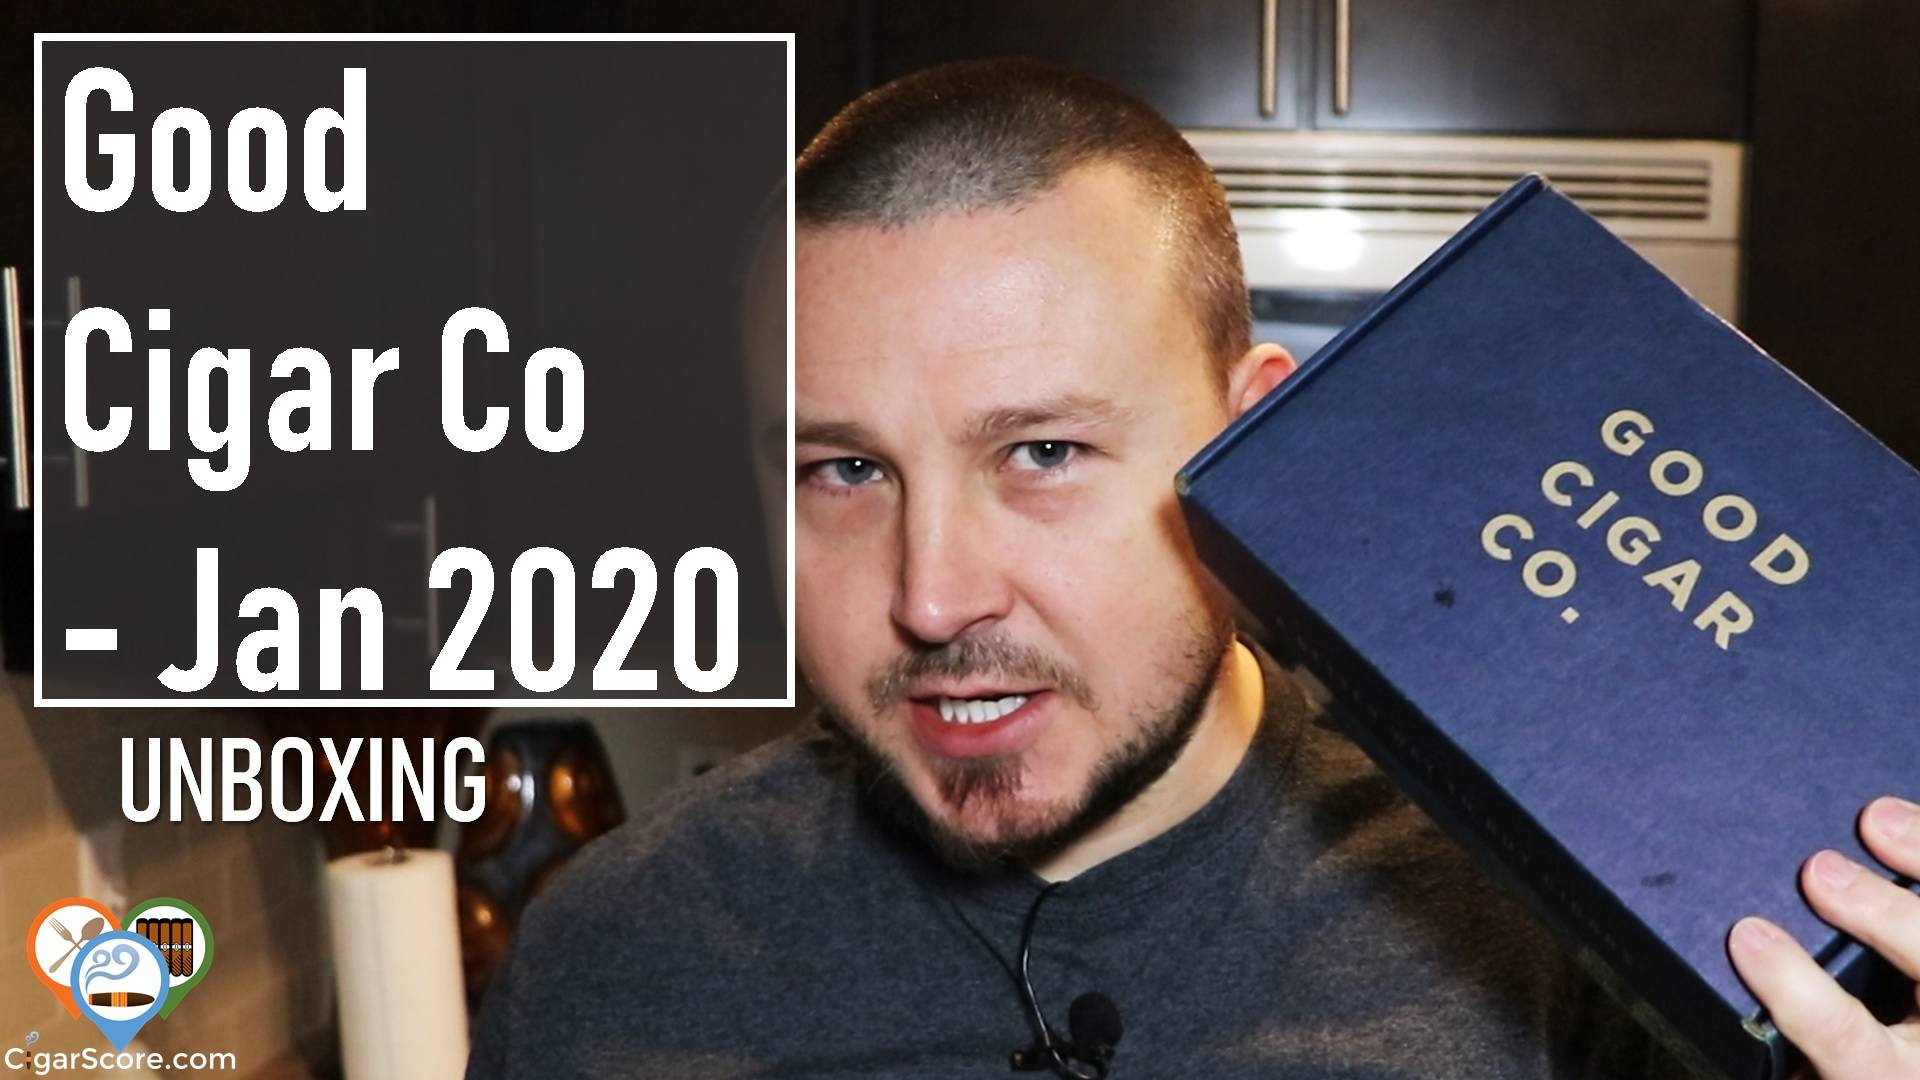 Unboxing - Good Cigar Co January 2020